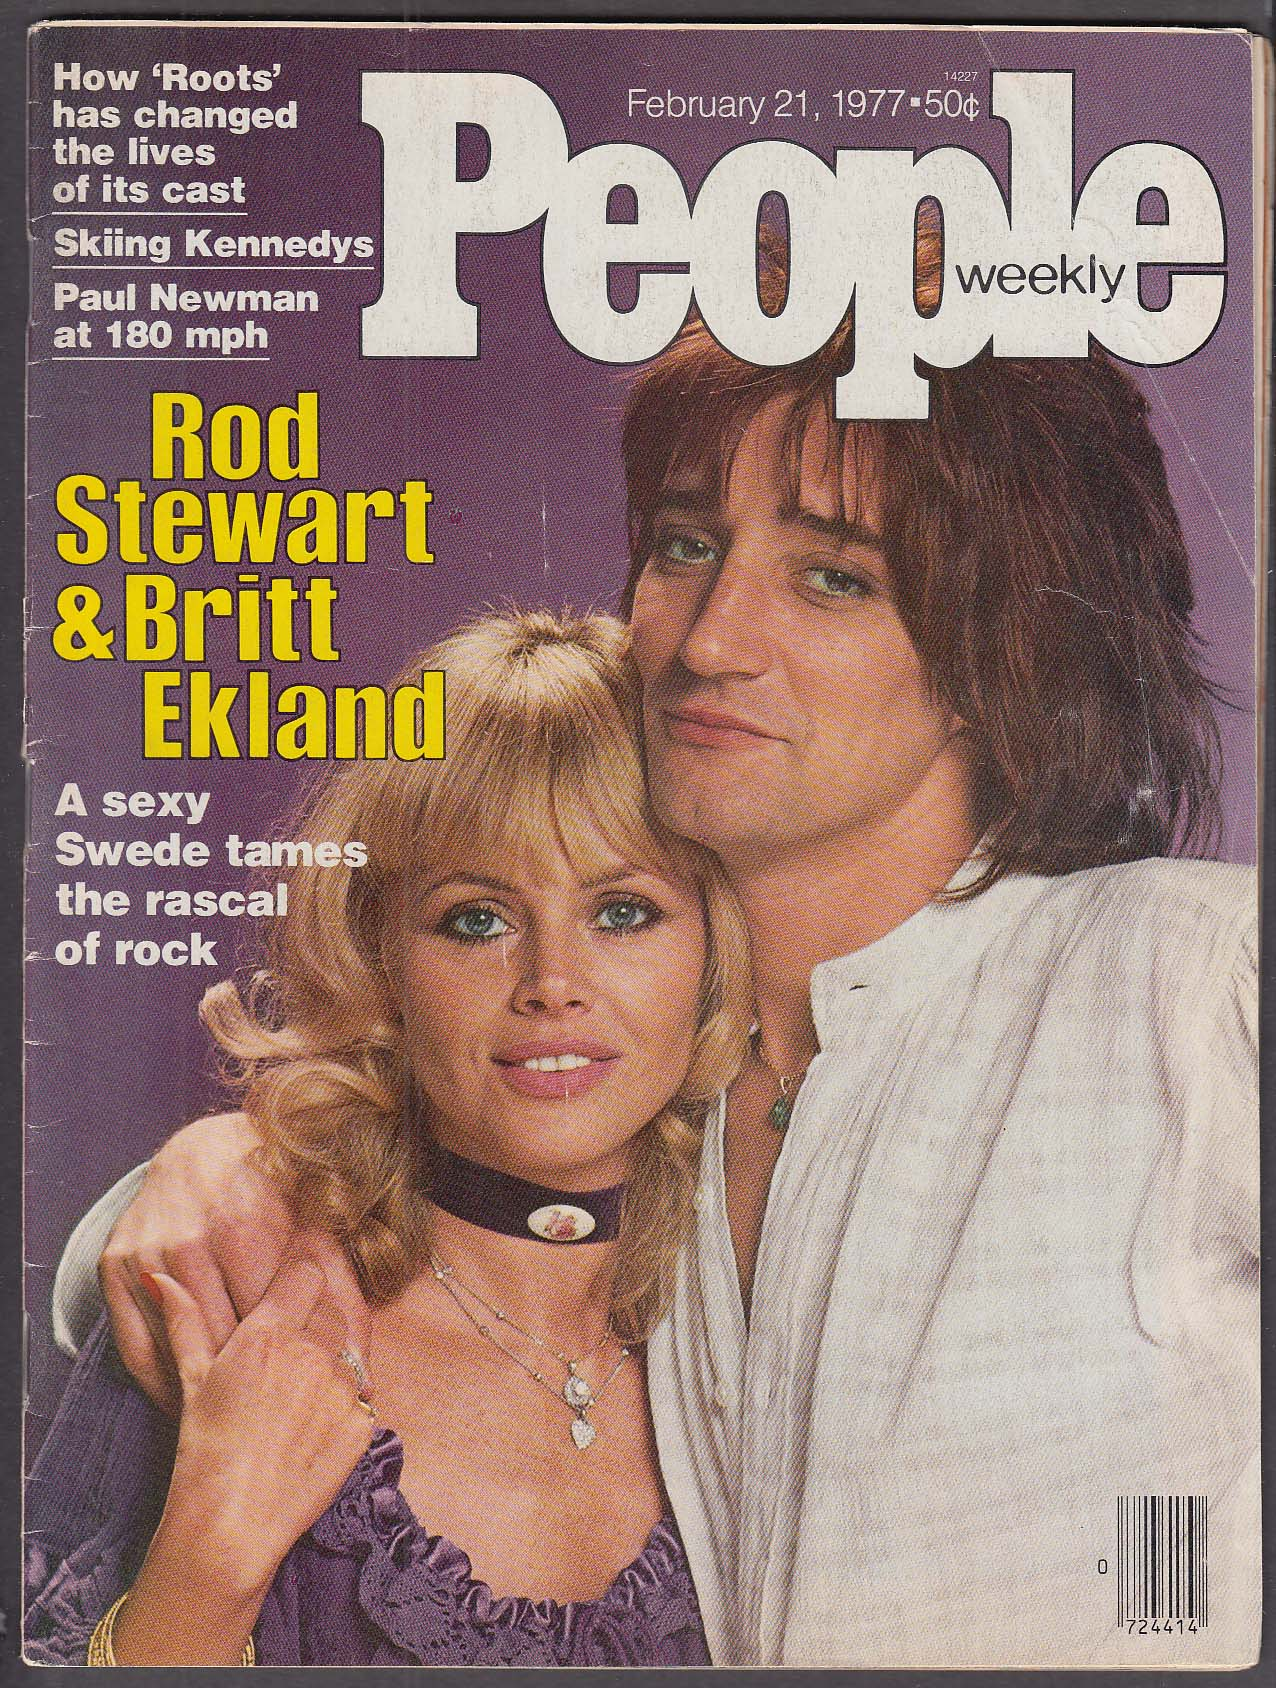 Image for PEOPLE Rod Stewart Britt Ekland Paul Newman Roots 2/21 1977